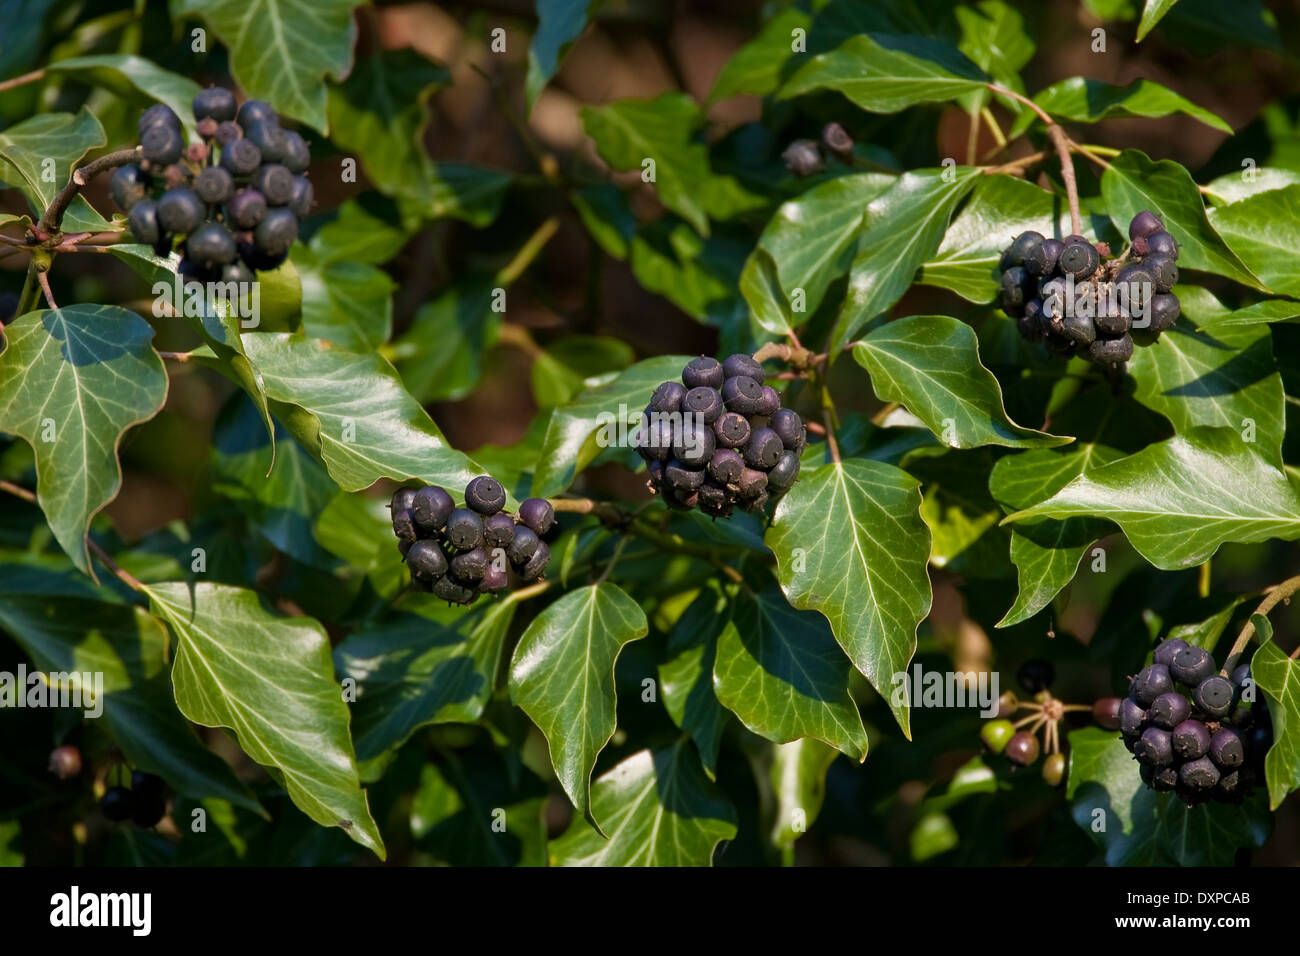 common ivy english evy fruit efeu frucht fr chte beeren hedera stock photo royalty free. Black Bedroom Furniture Sets. Home Design Ideas